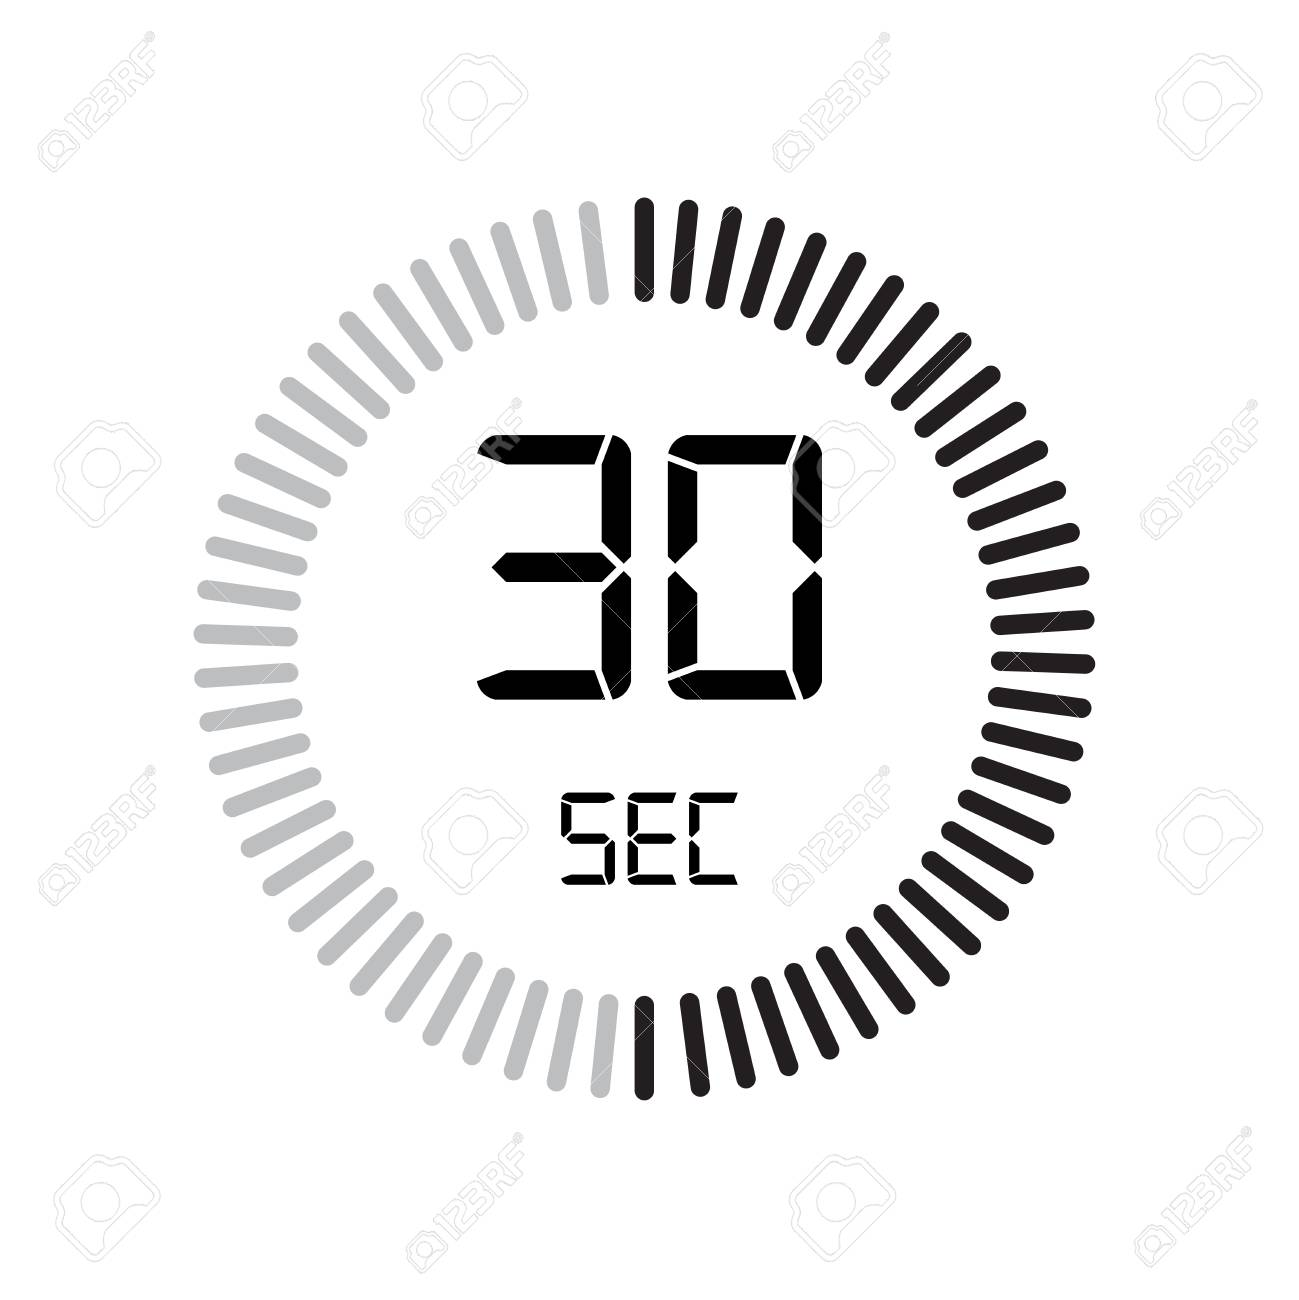 The 30 seconds icon, digital timer. clock and watch, timer, countdown symbol isolated on white background, stopwatch vector icon - 107408067